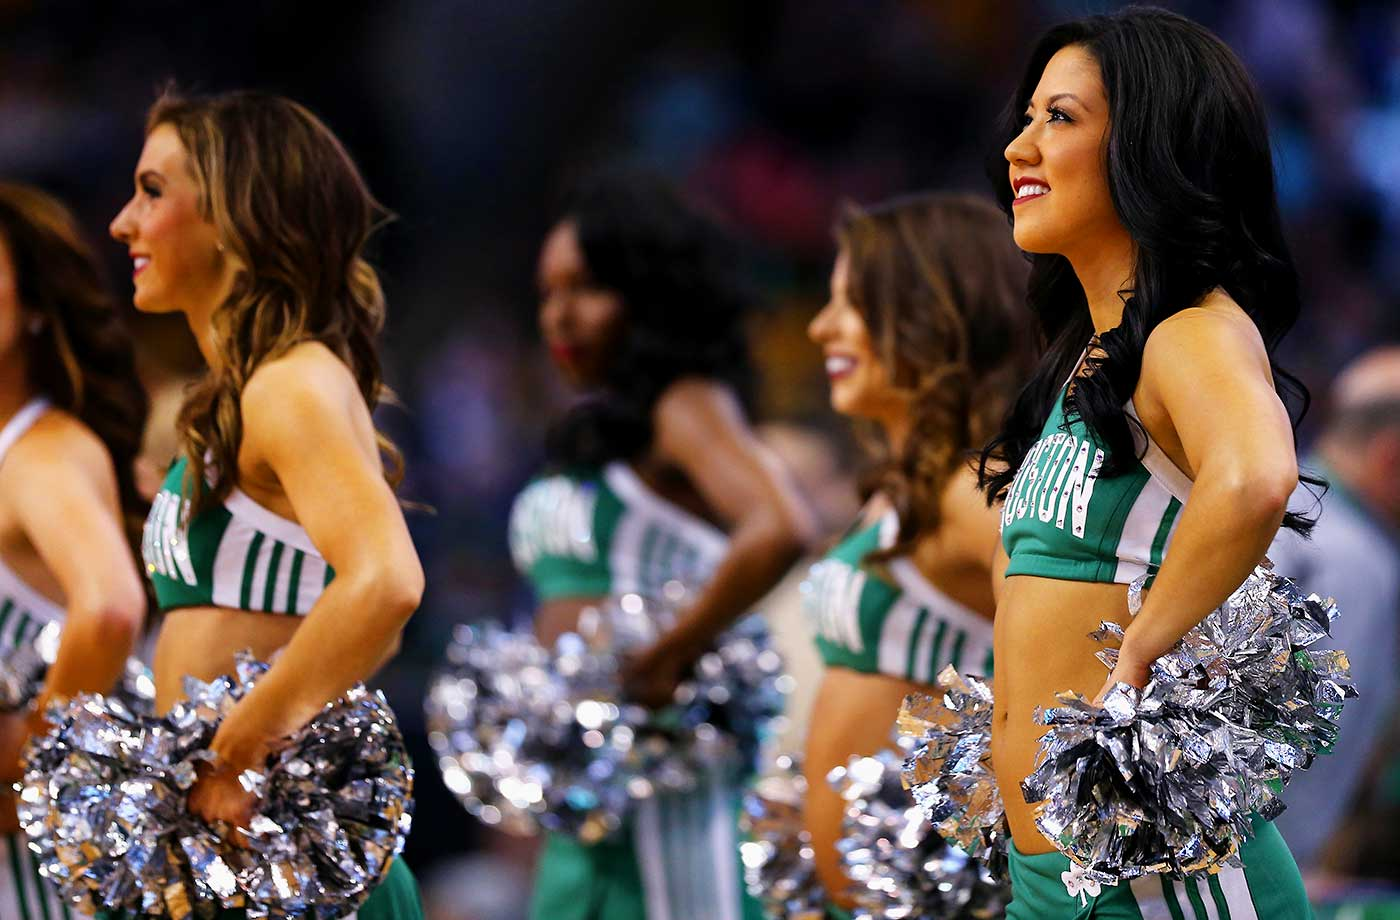 The Celtics Cheerleaders look on during the first quarter at TD Garden.